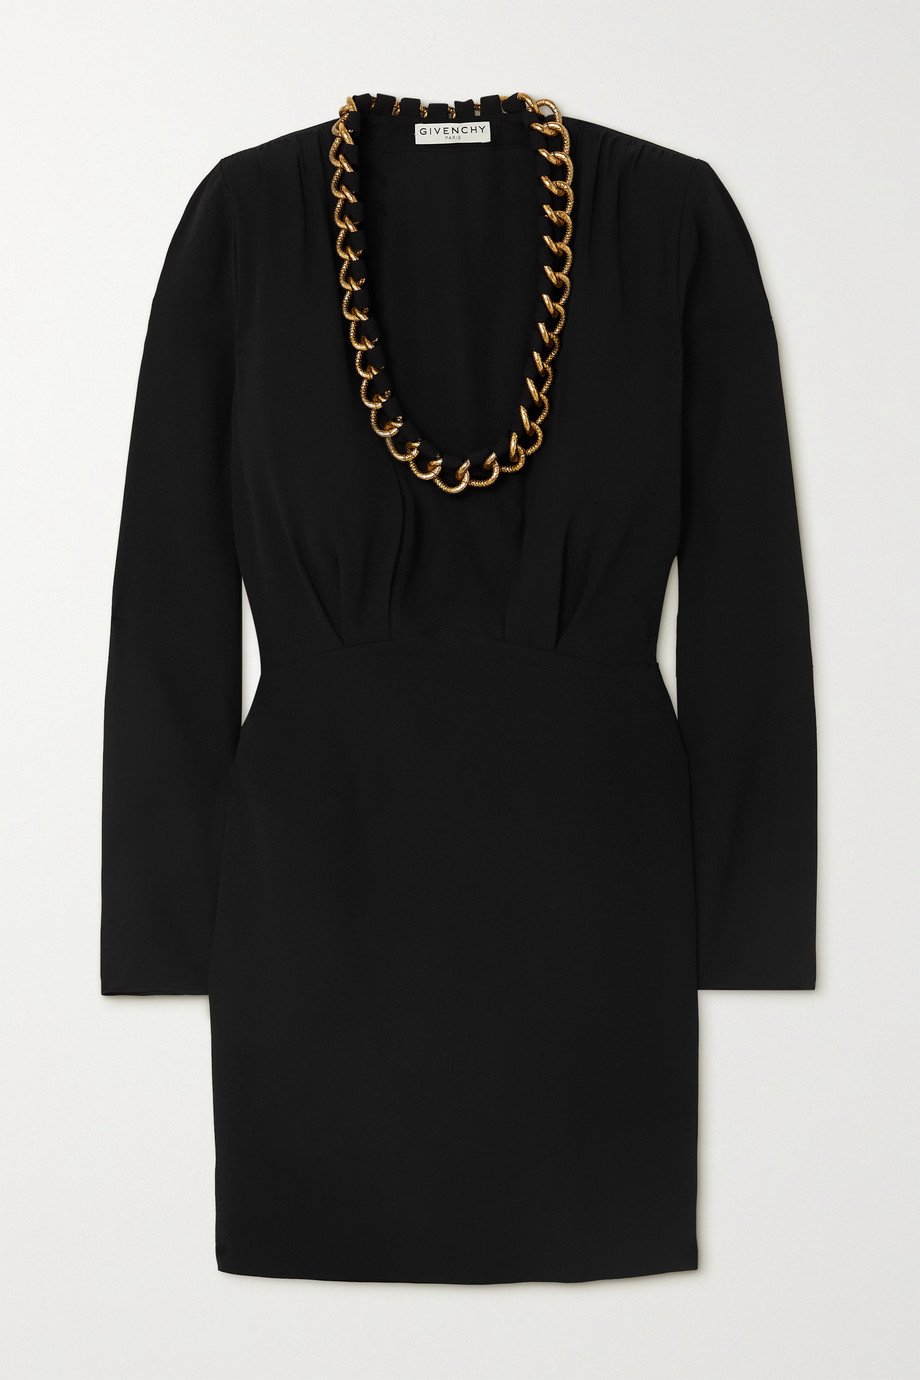 Givenchy Chain-embellished crepe mini dress